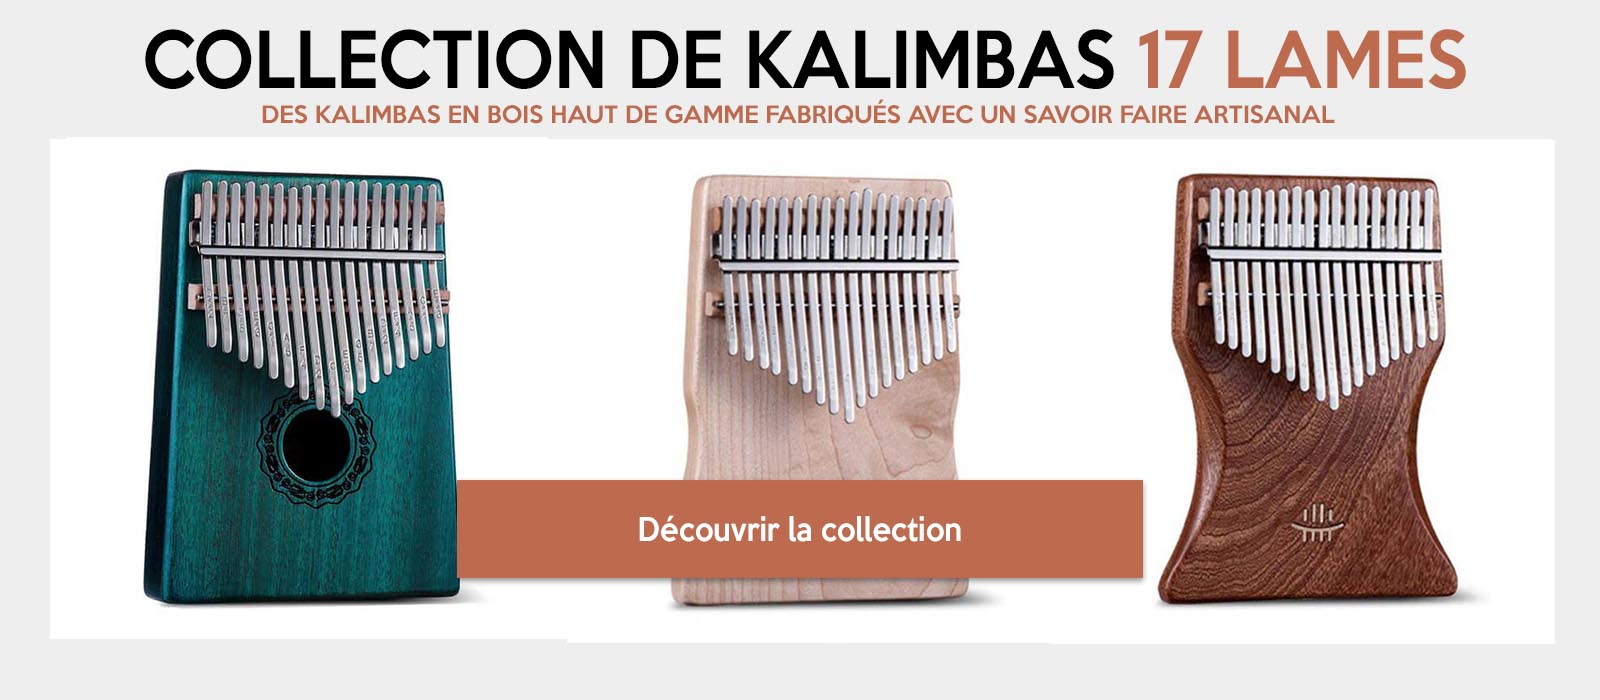 Collection de Kalimbas 17 lames